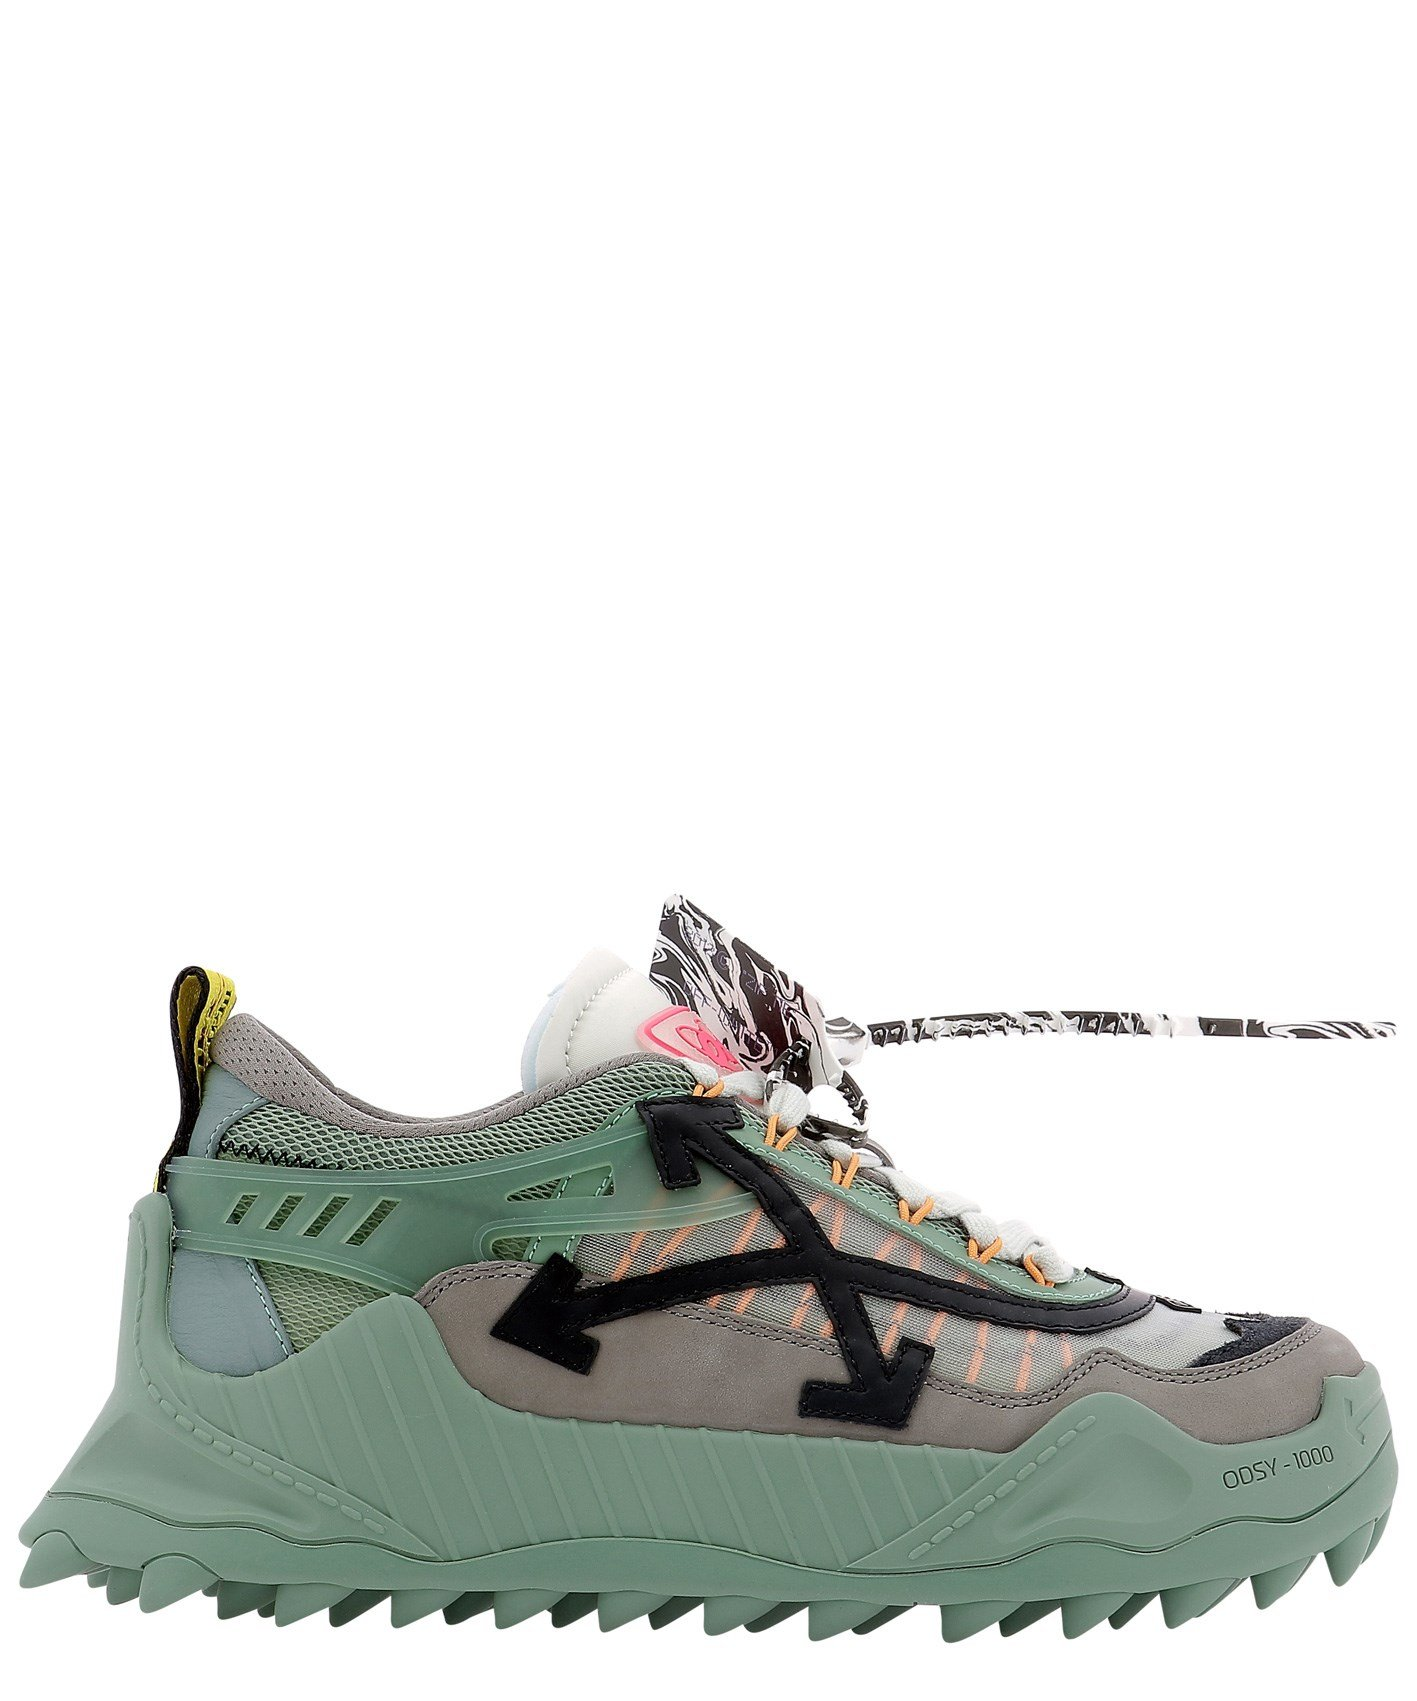 """""""Odsy-1000"""" sneakers"""